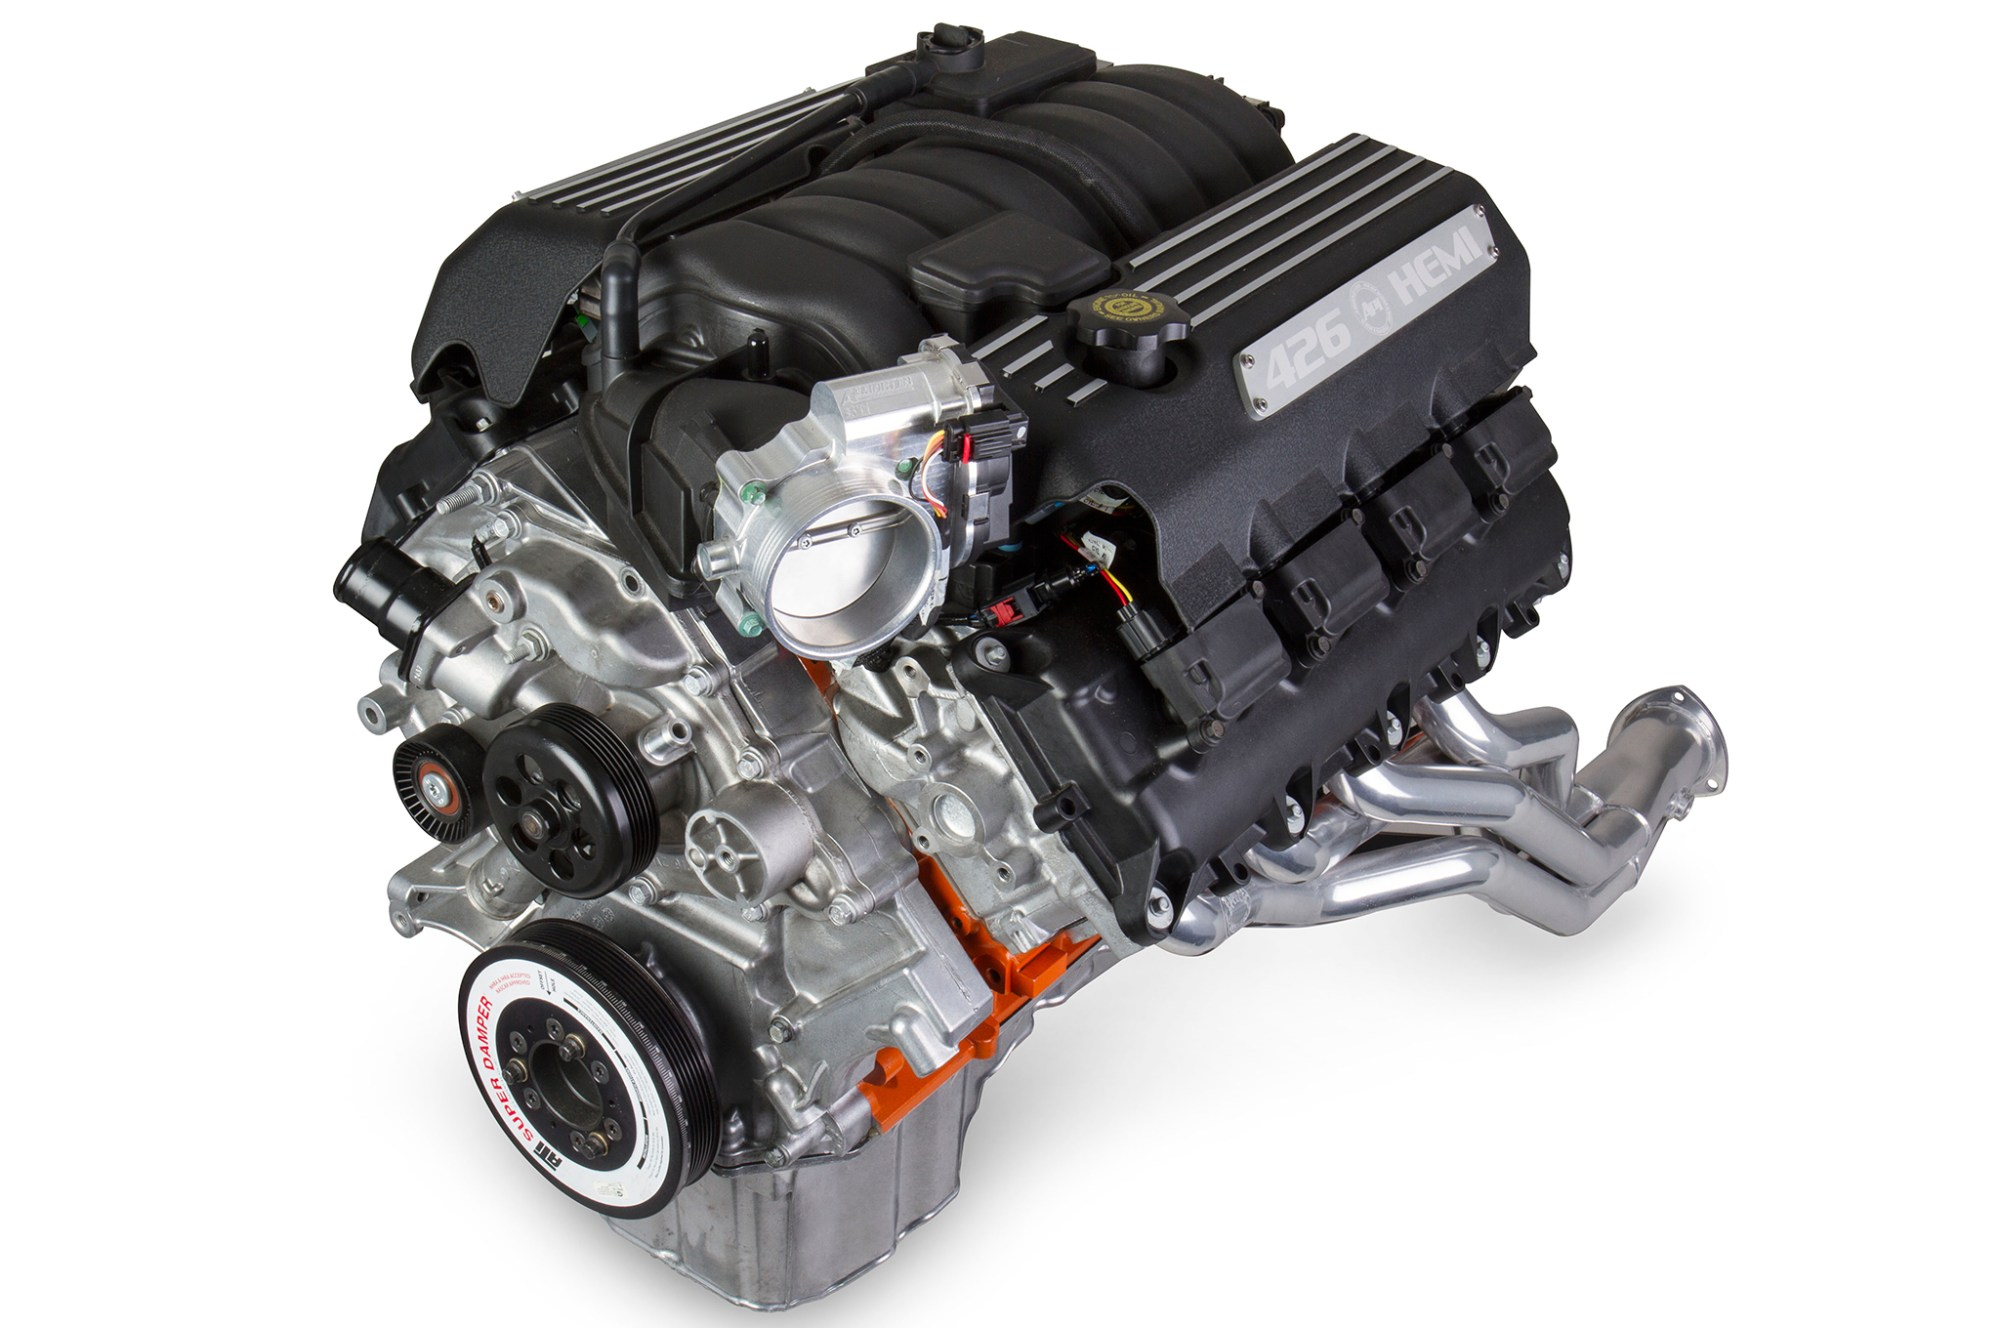 hight resolution of hemi engine swaps made simple with new holley efi harness hot rod hemi engine wiring